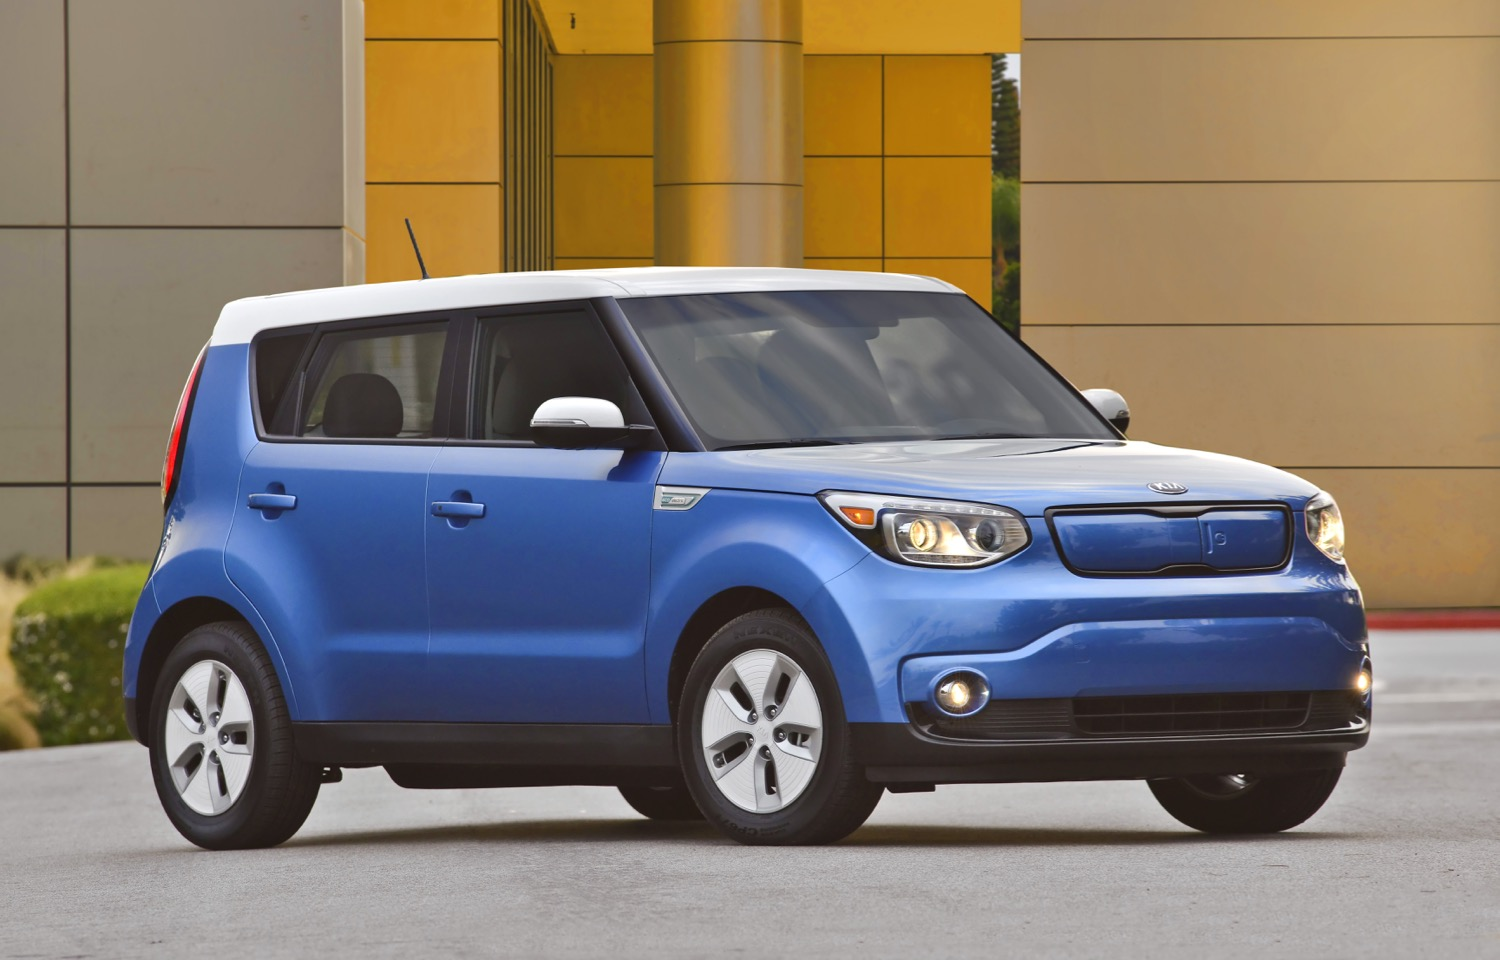 2018 kia soul ev to get range boost to keep pace report. Black Bedroom Furniture Sets. Home Design Ideas